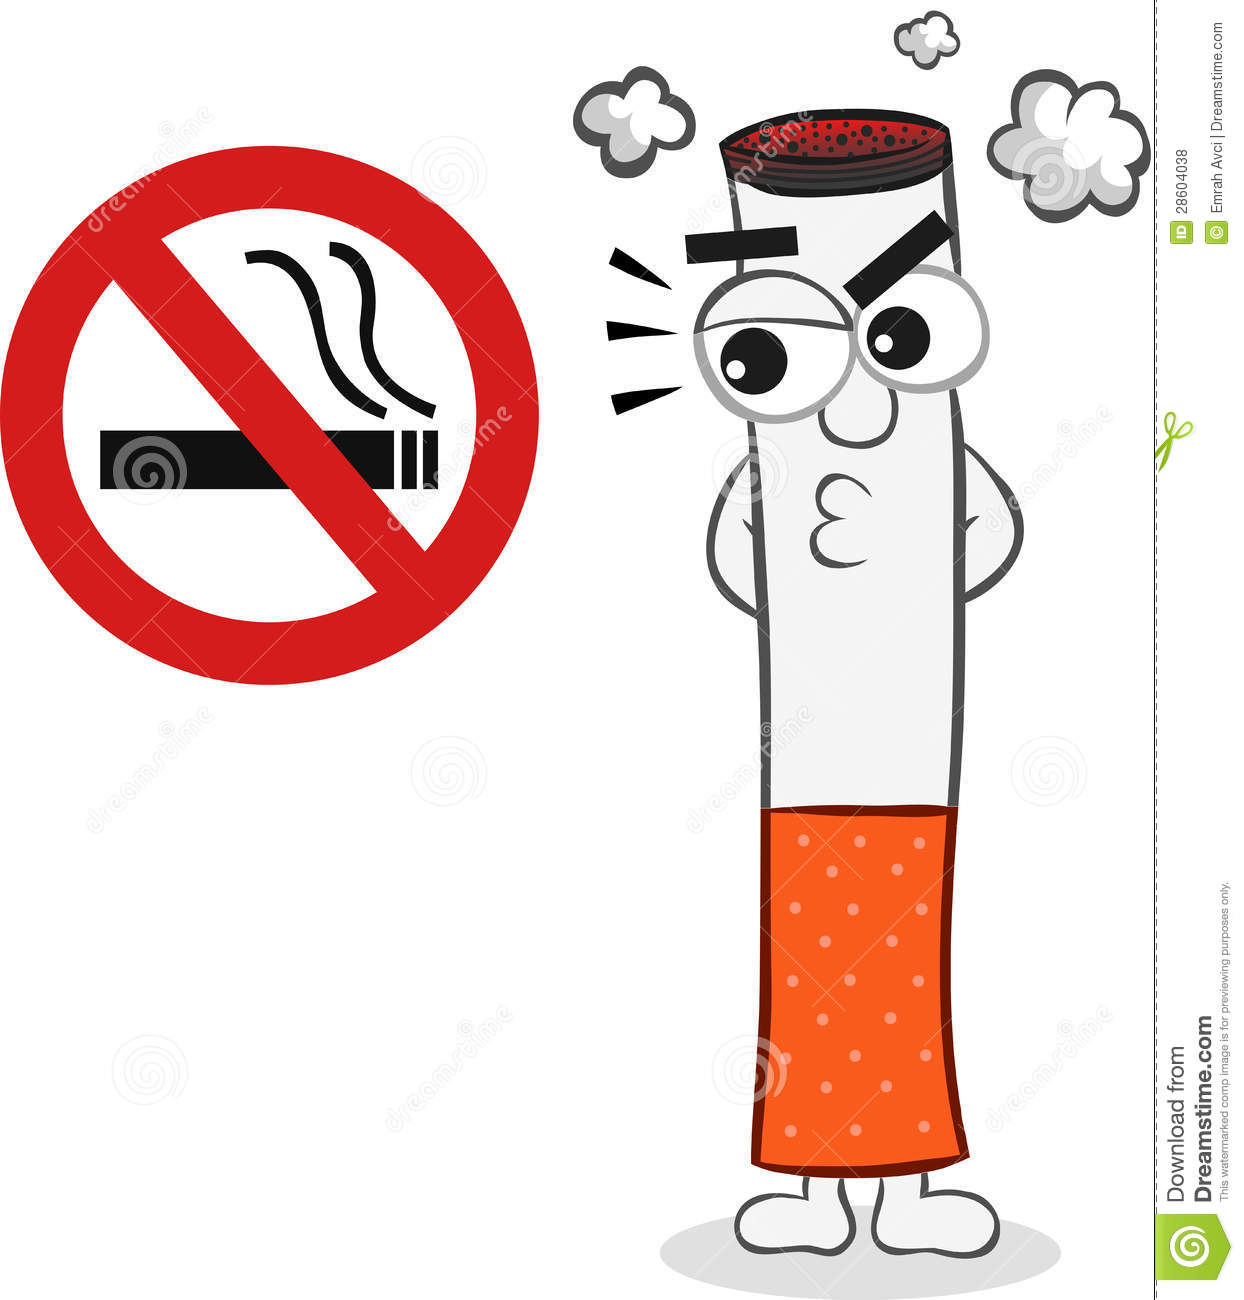 Cigarette Caricature smoking ban and cigarette cartoon stock vector - illustration of